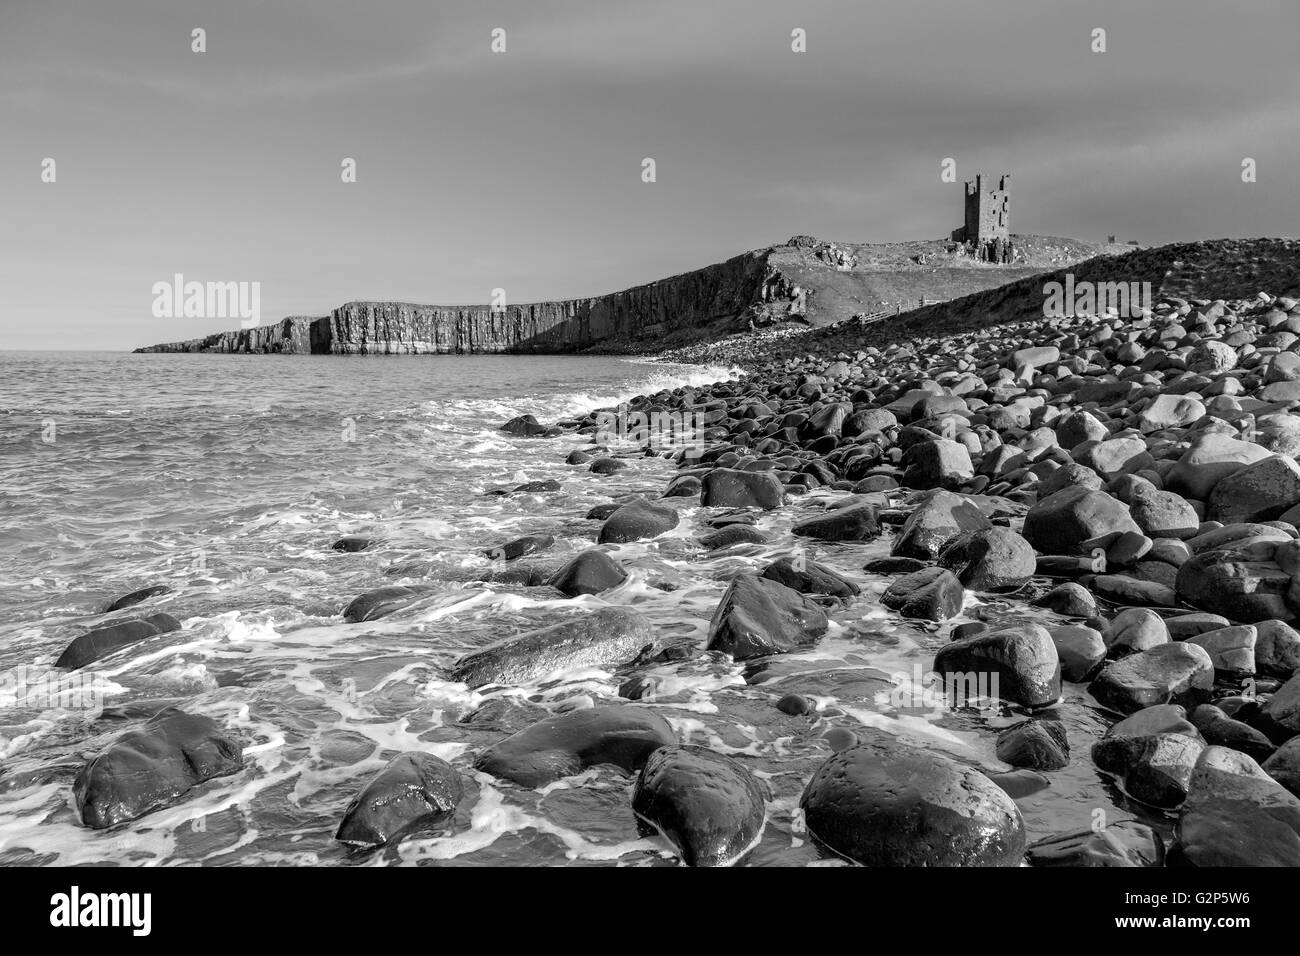 Dunstanburgh Castle in monochrome, on the north east coast of Northumberland, England, UK - Stock Image